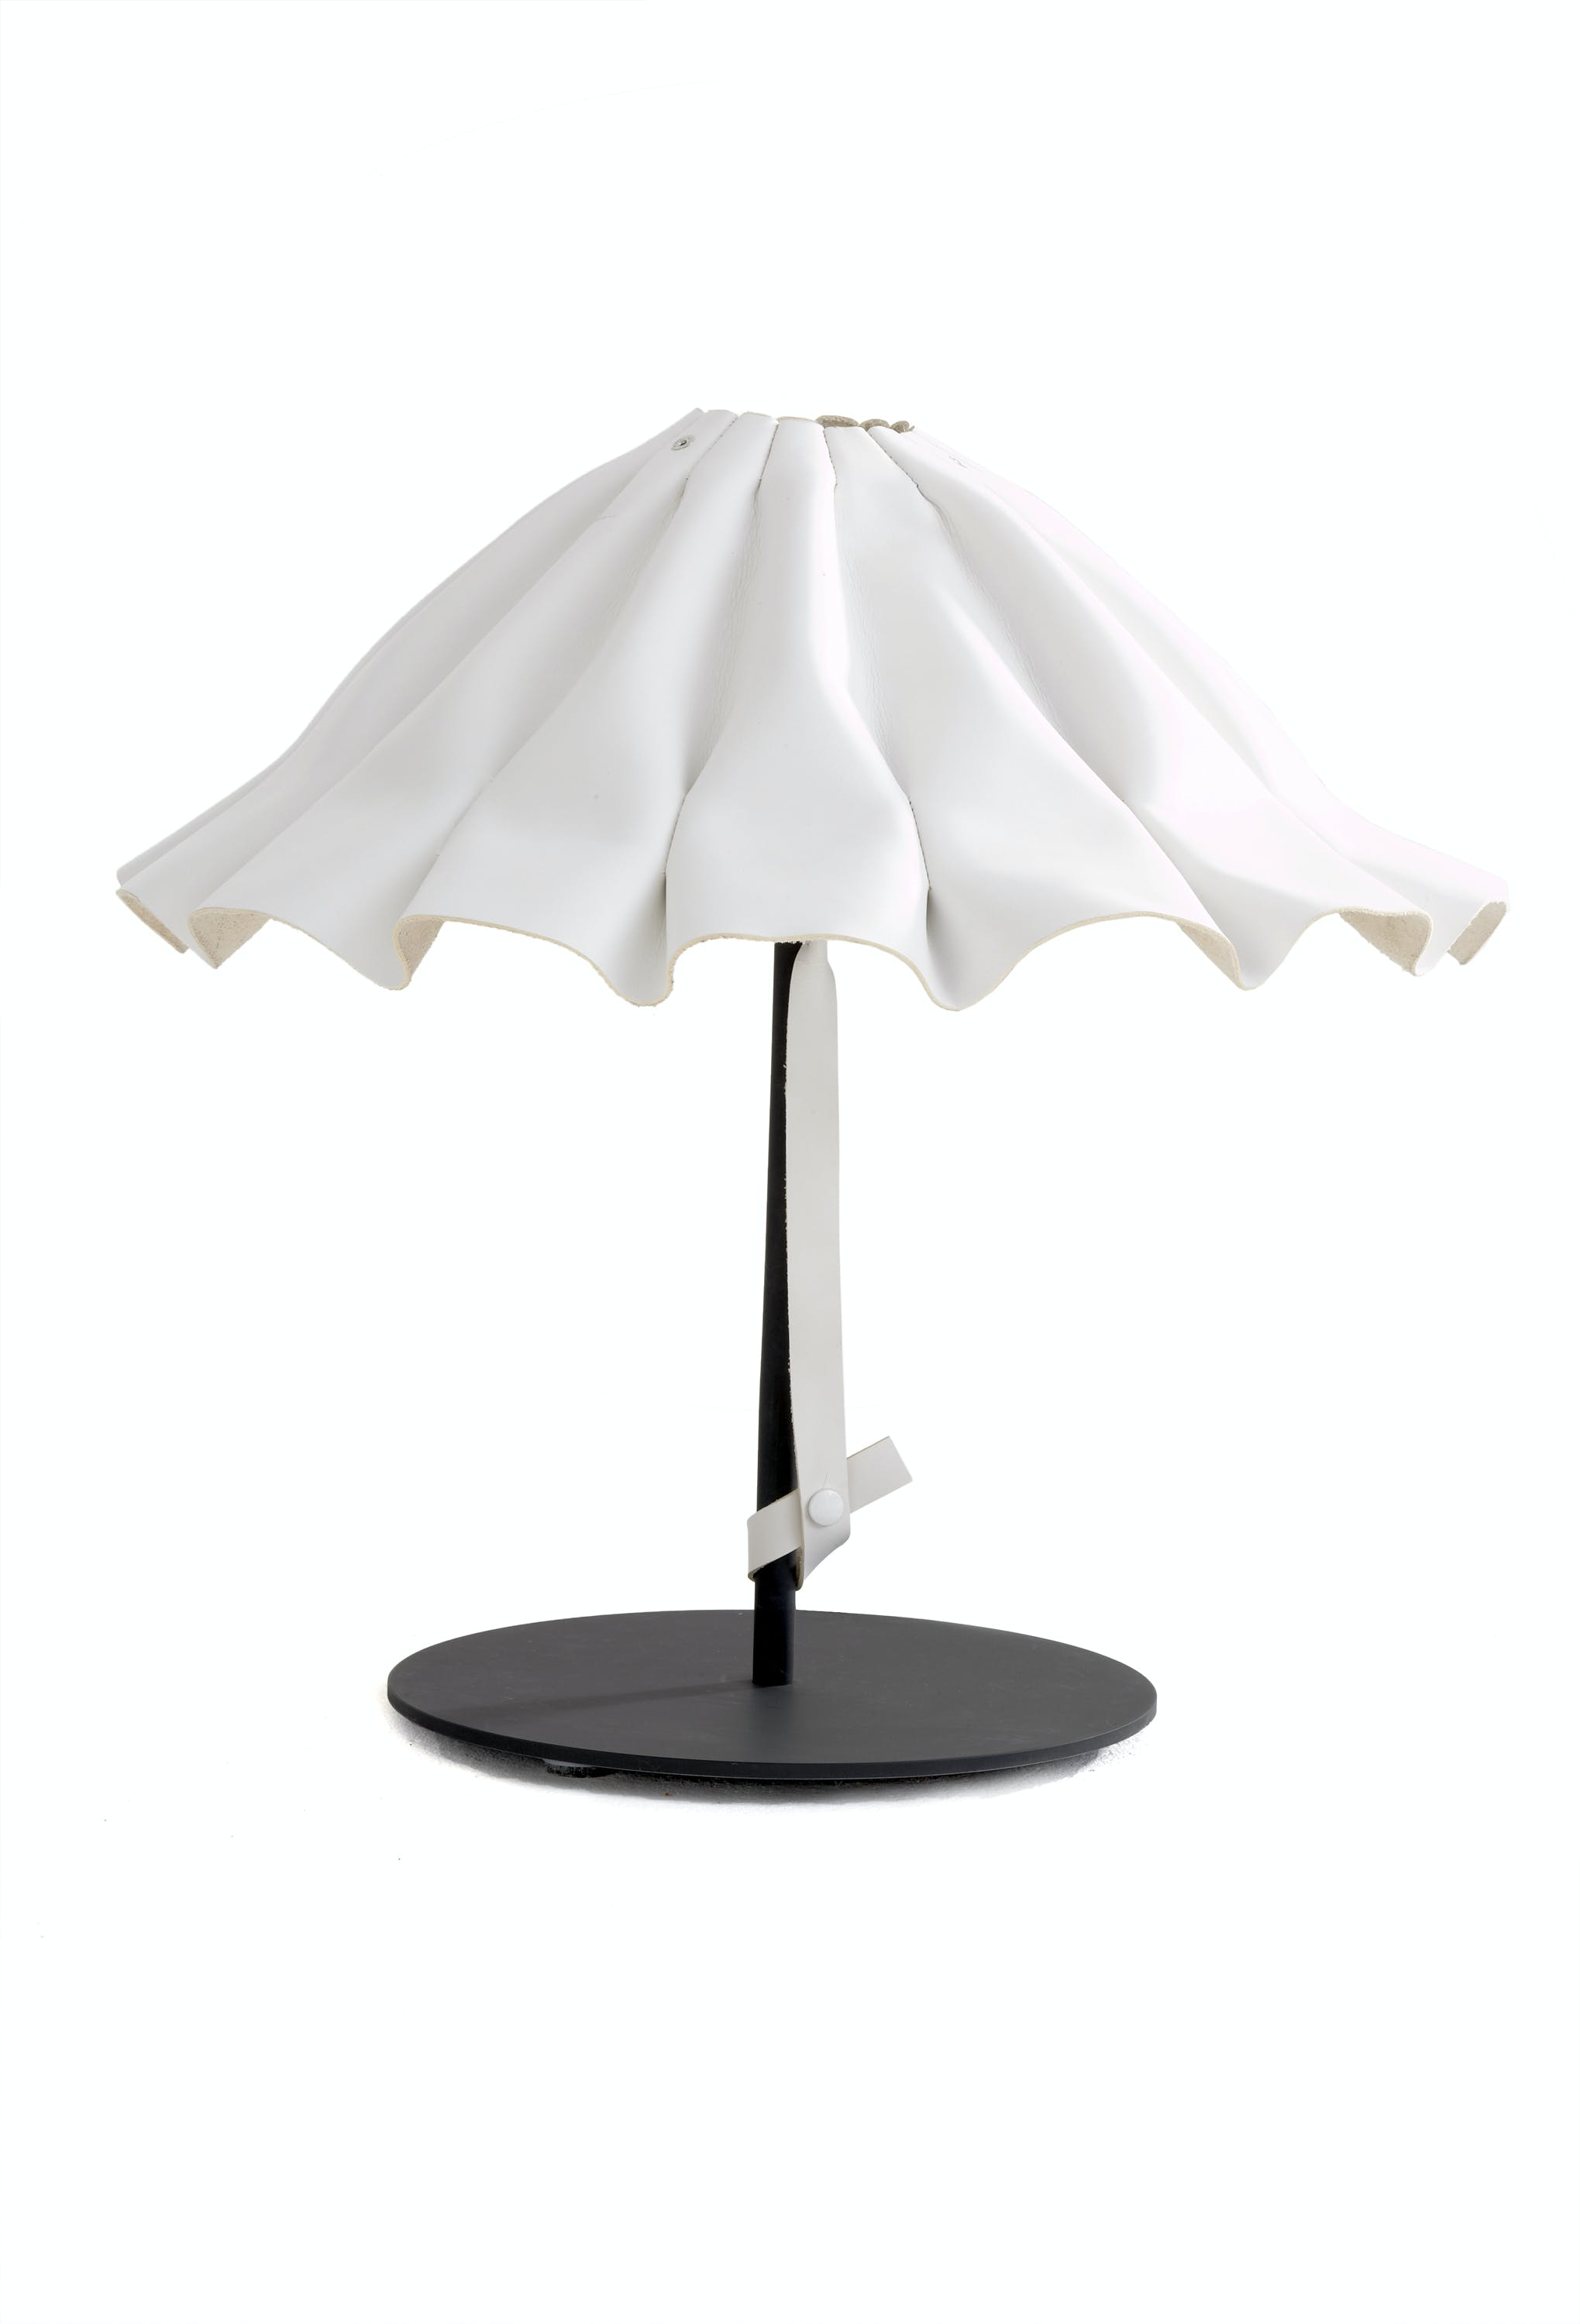 Lude Table Lamp Photo P Grootes